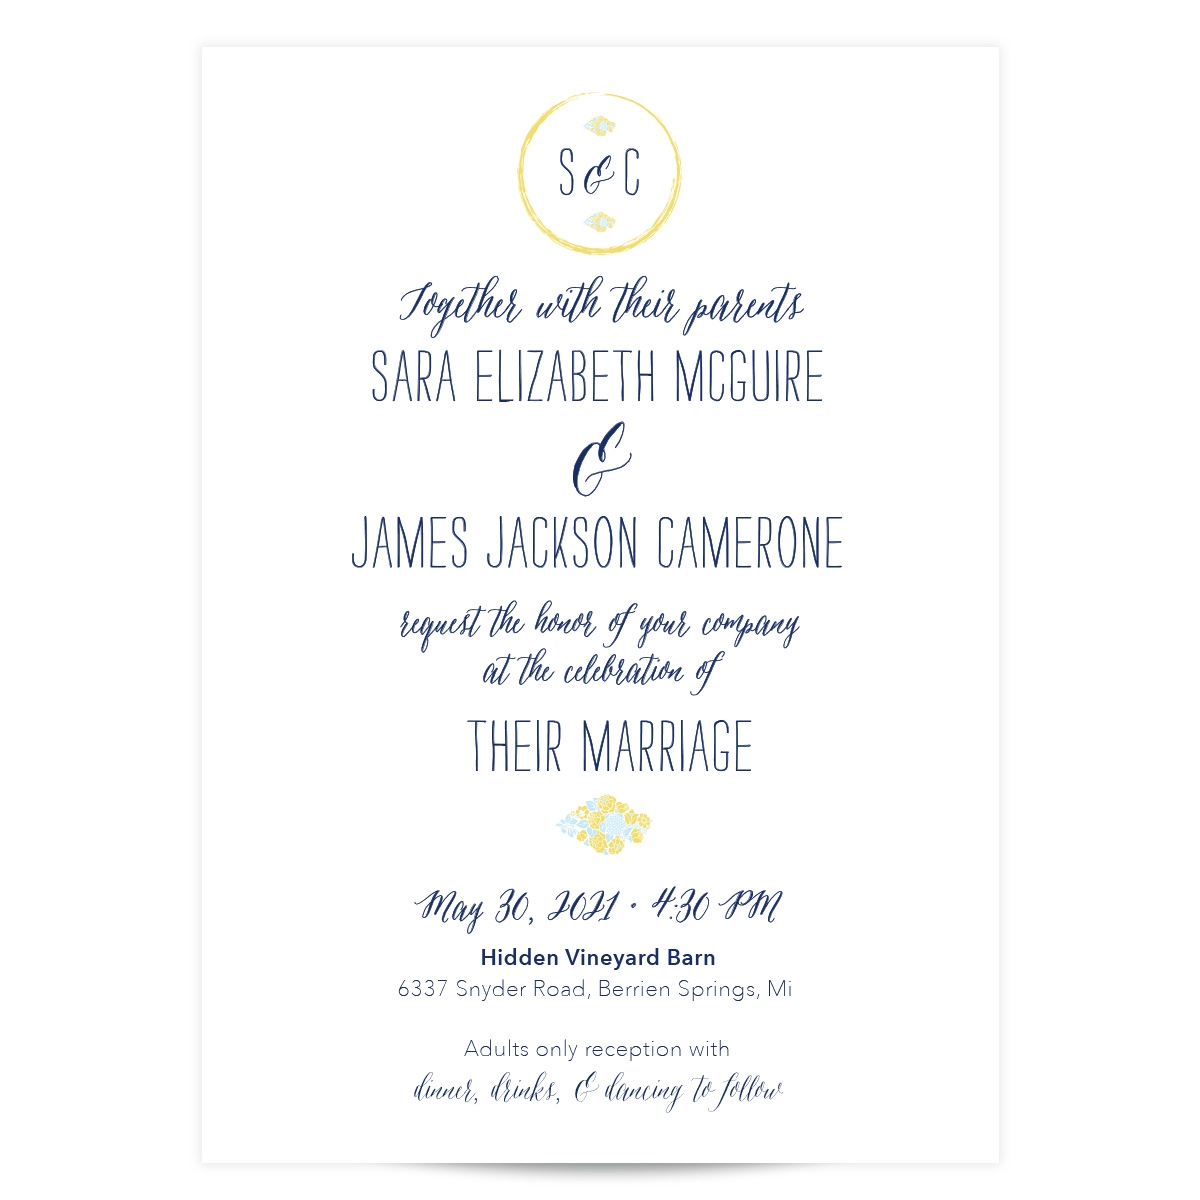 Navy Blue and Yellow Floral Wedding Invitation - In the Garden - Pixie